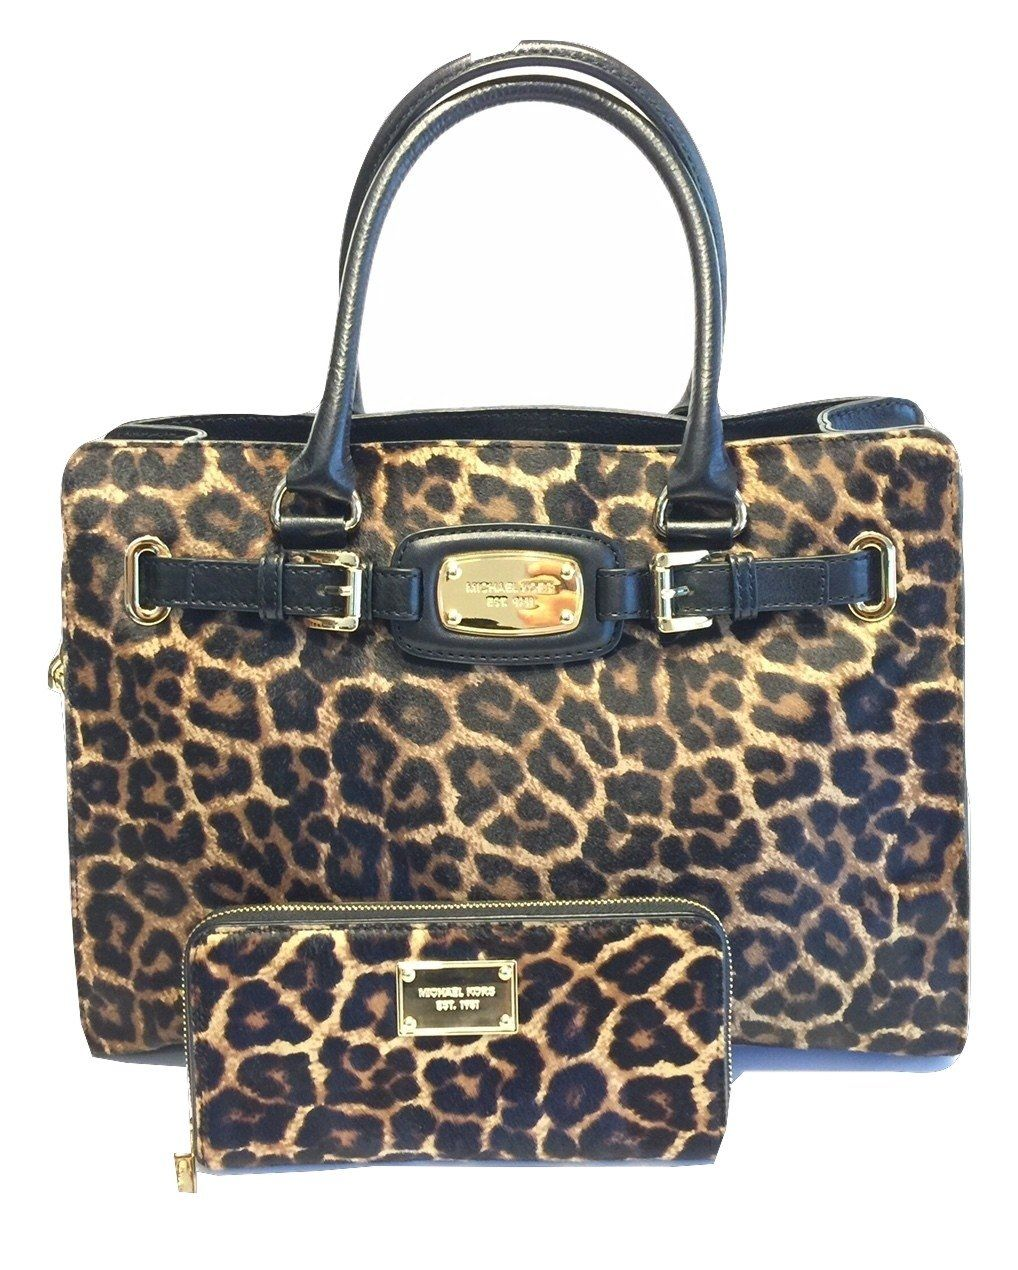 0e0fefbbc6c8 Michael Kors Hamilton Large EW Tote and ZA Continental Wallet Cheetah Calf  Hair Matching Set